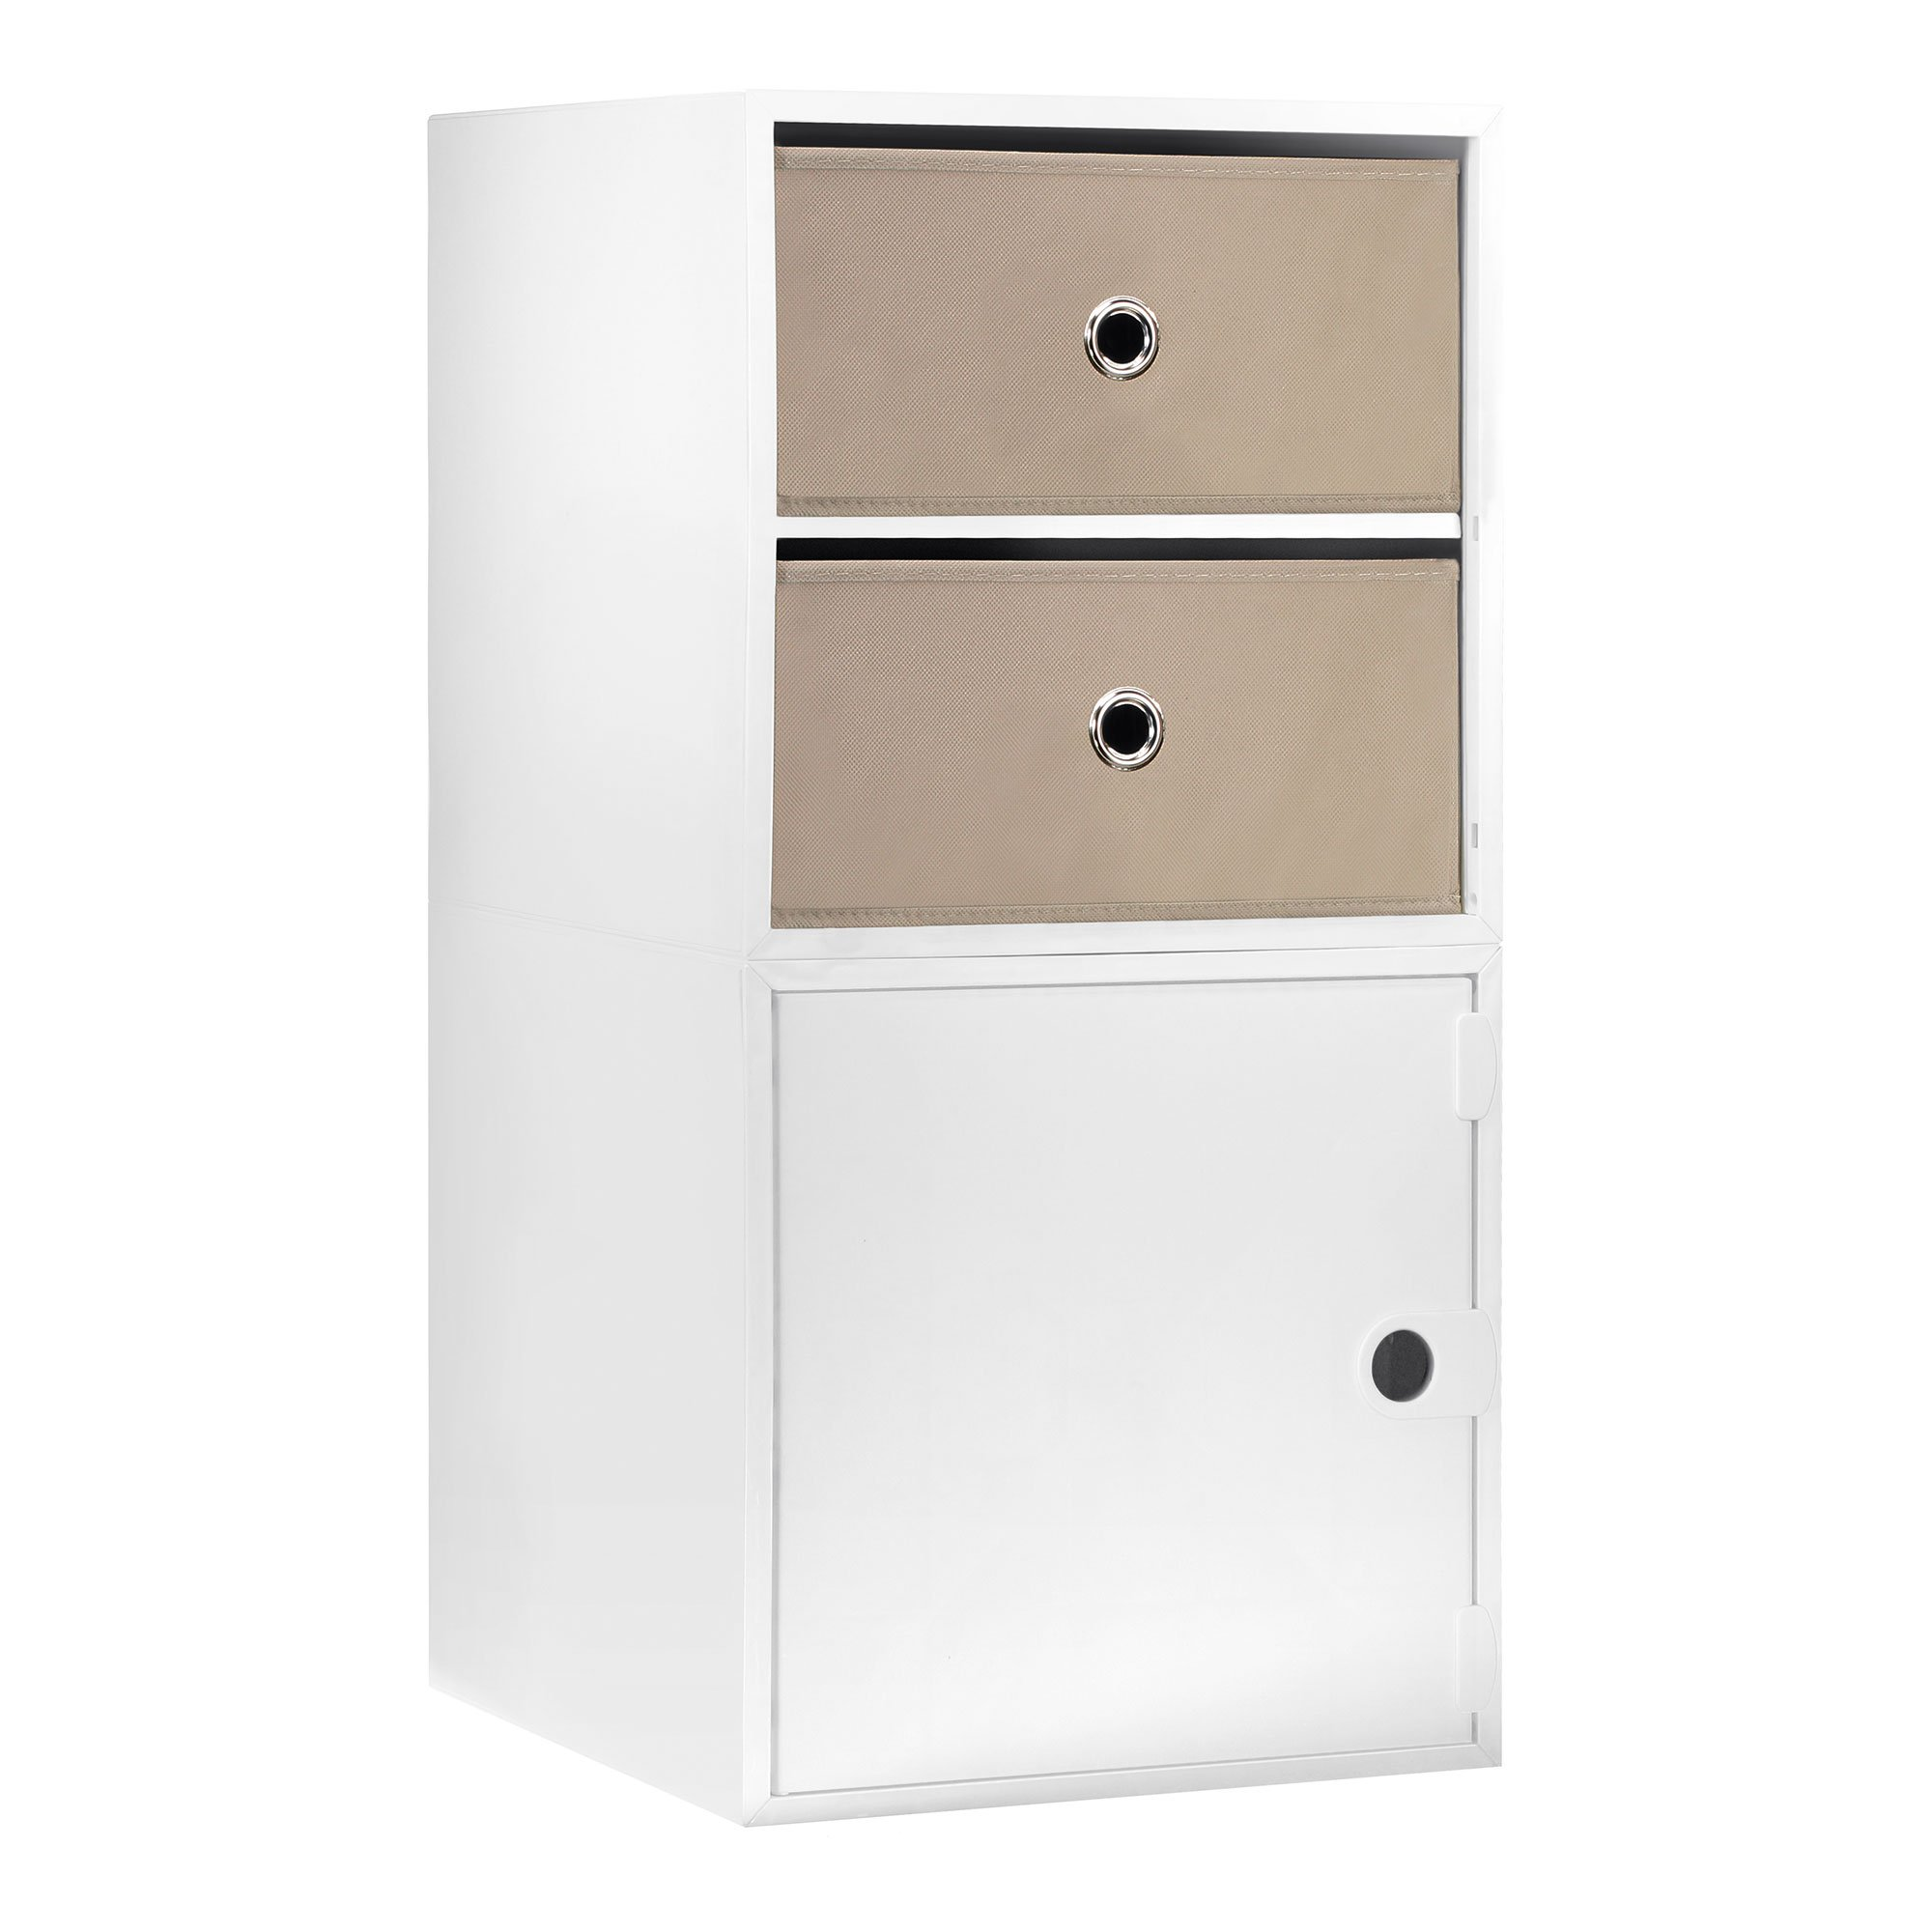 iCube 2-Drawer Nightstand (White)